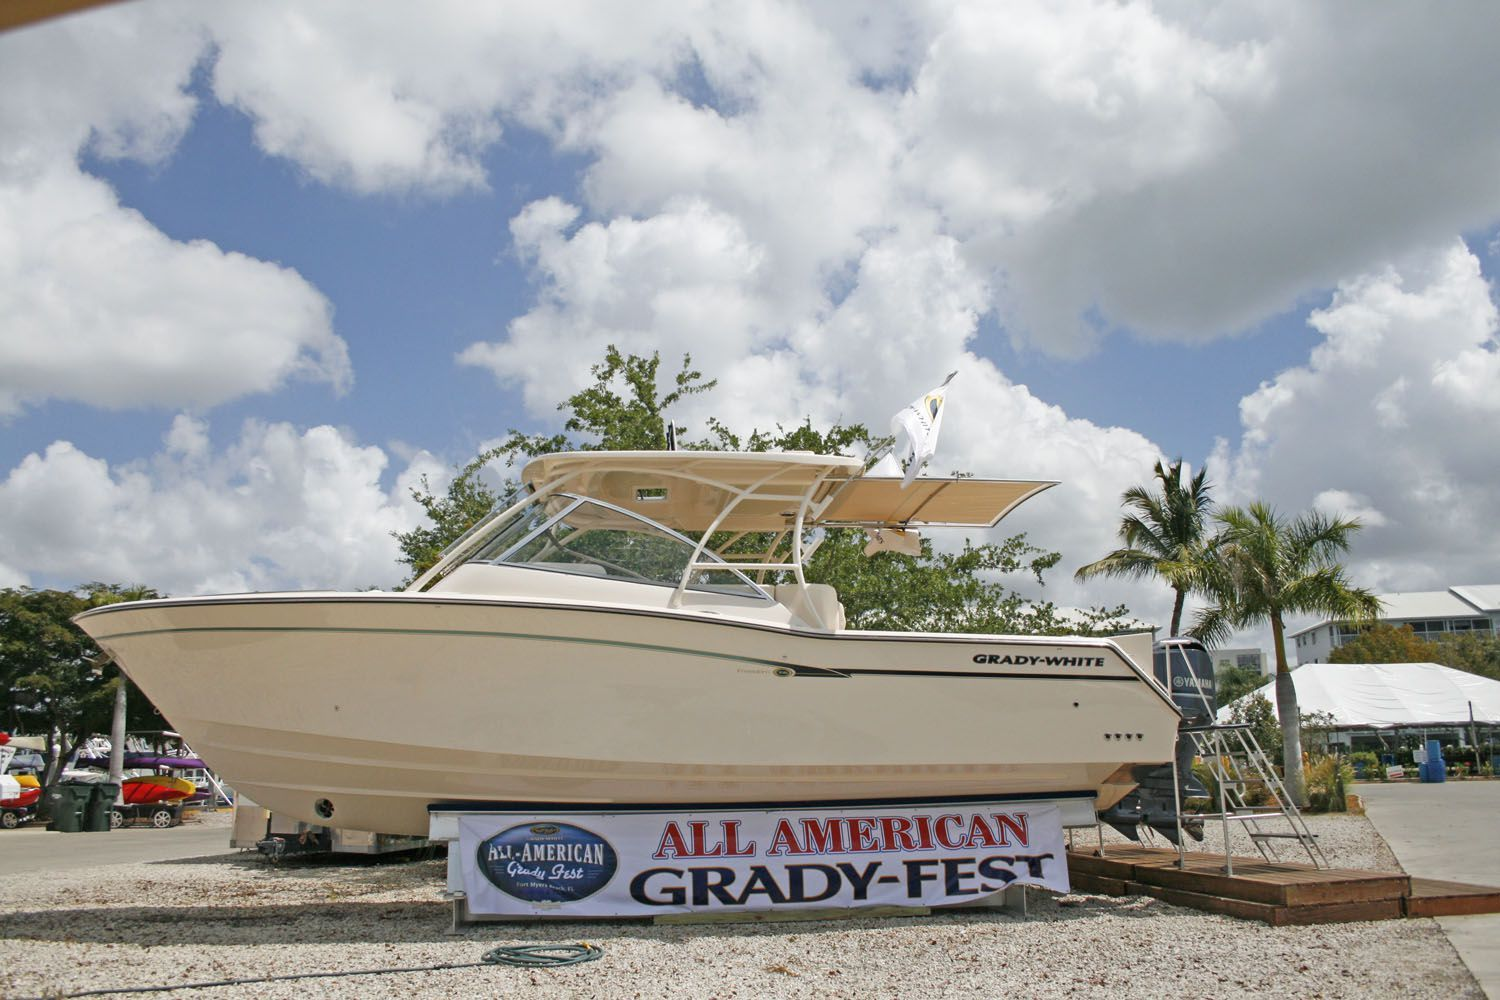 Grady white 335 freedom debuted at gradyfest iii fish for Fish tale boats